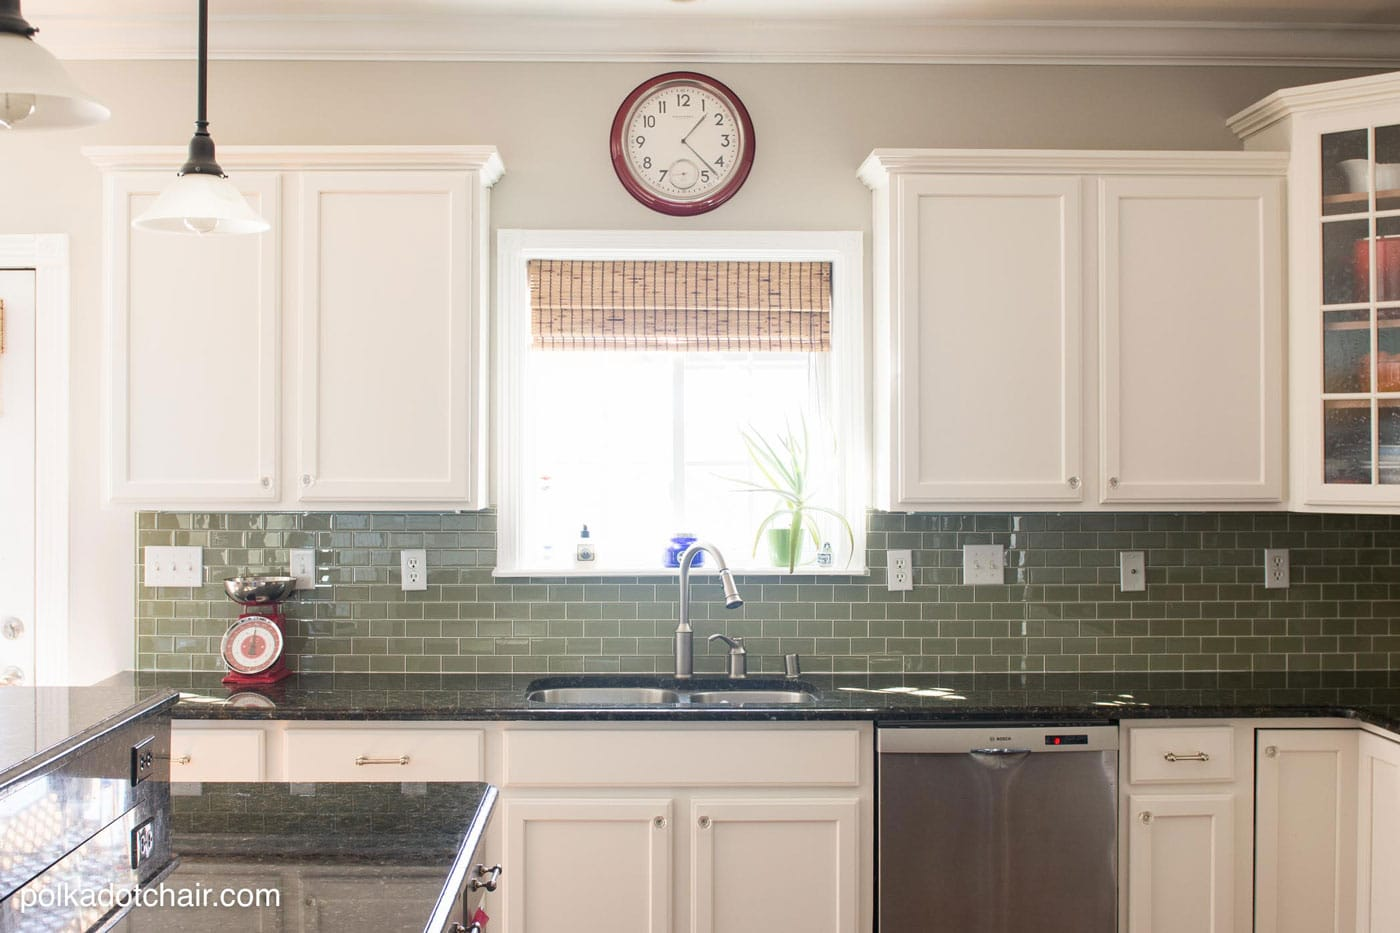 painted kitchen cabinet ideas kitchen makeover reveal paint kitchen cabinets white Before and After Photos of a Kitchen that had it s Cabinets Painted White lots of